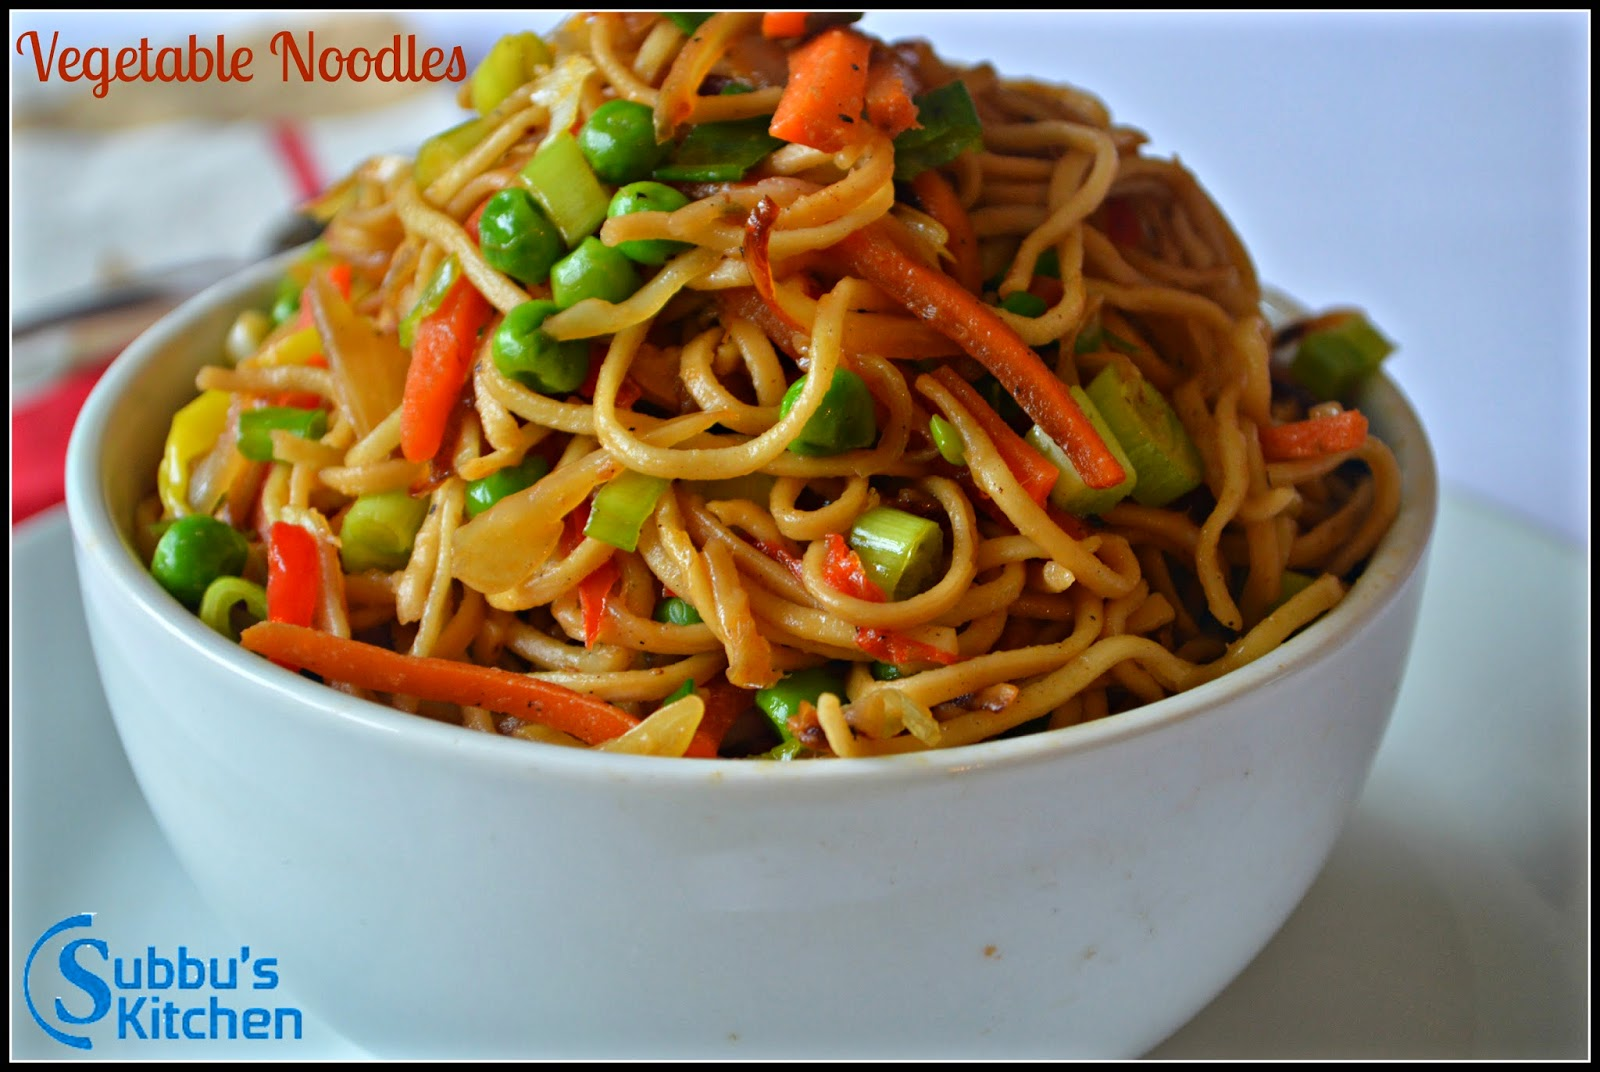 images of noodles - photo #47